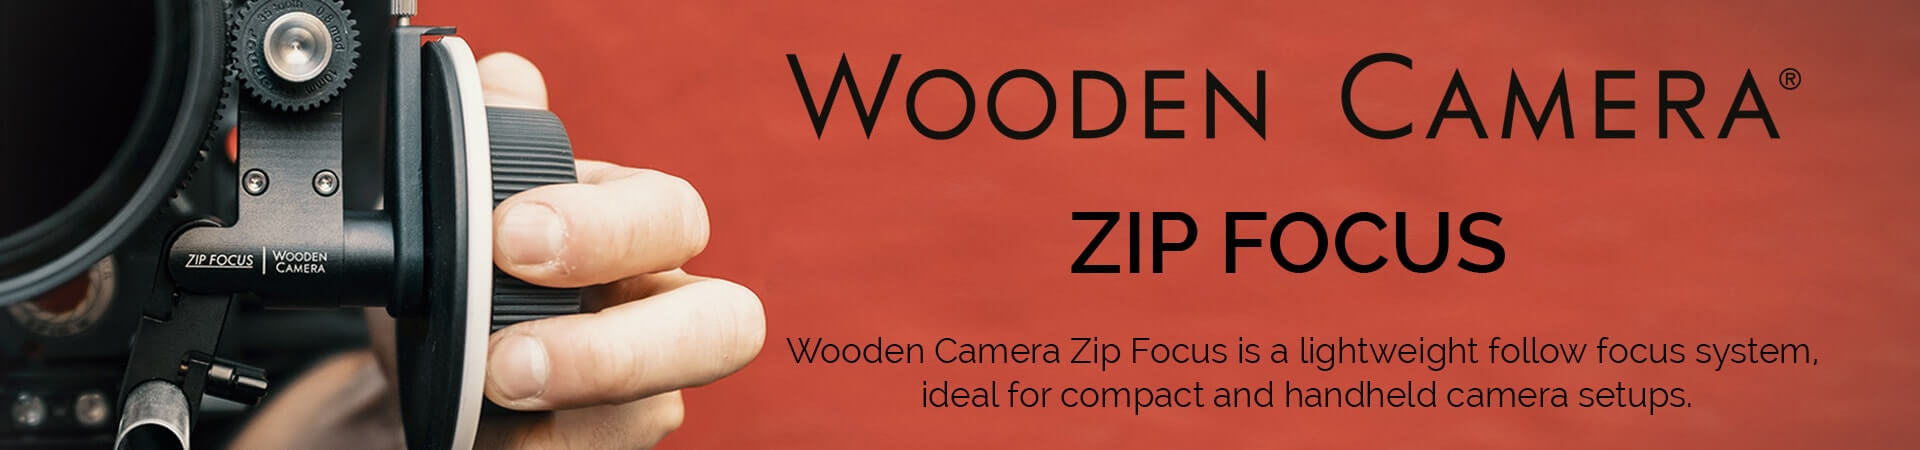 Wooden Camera Zip Focus